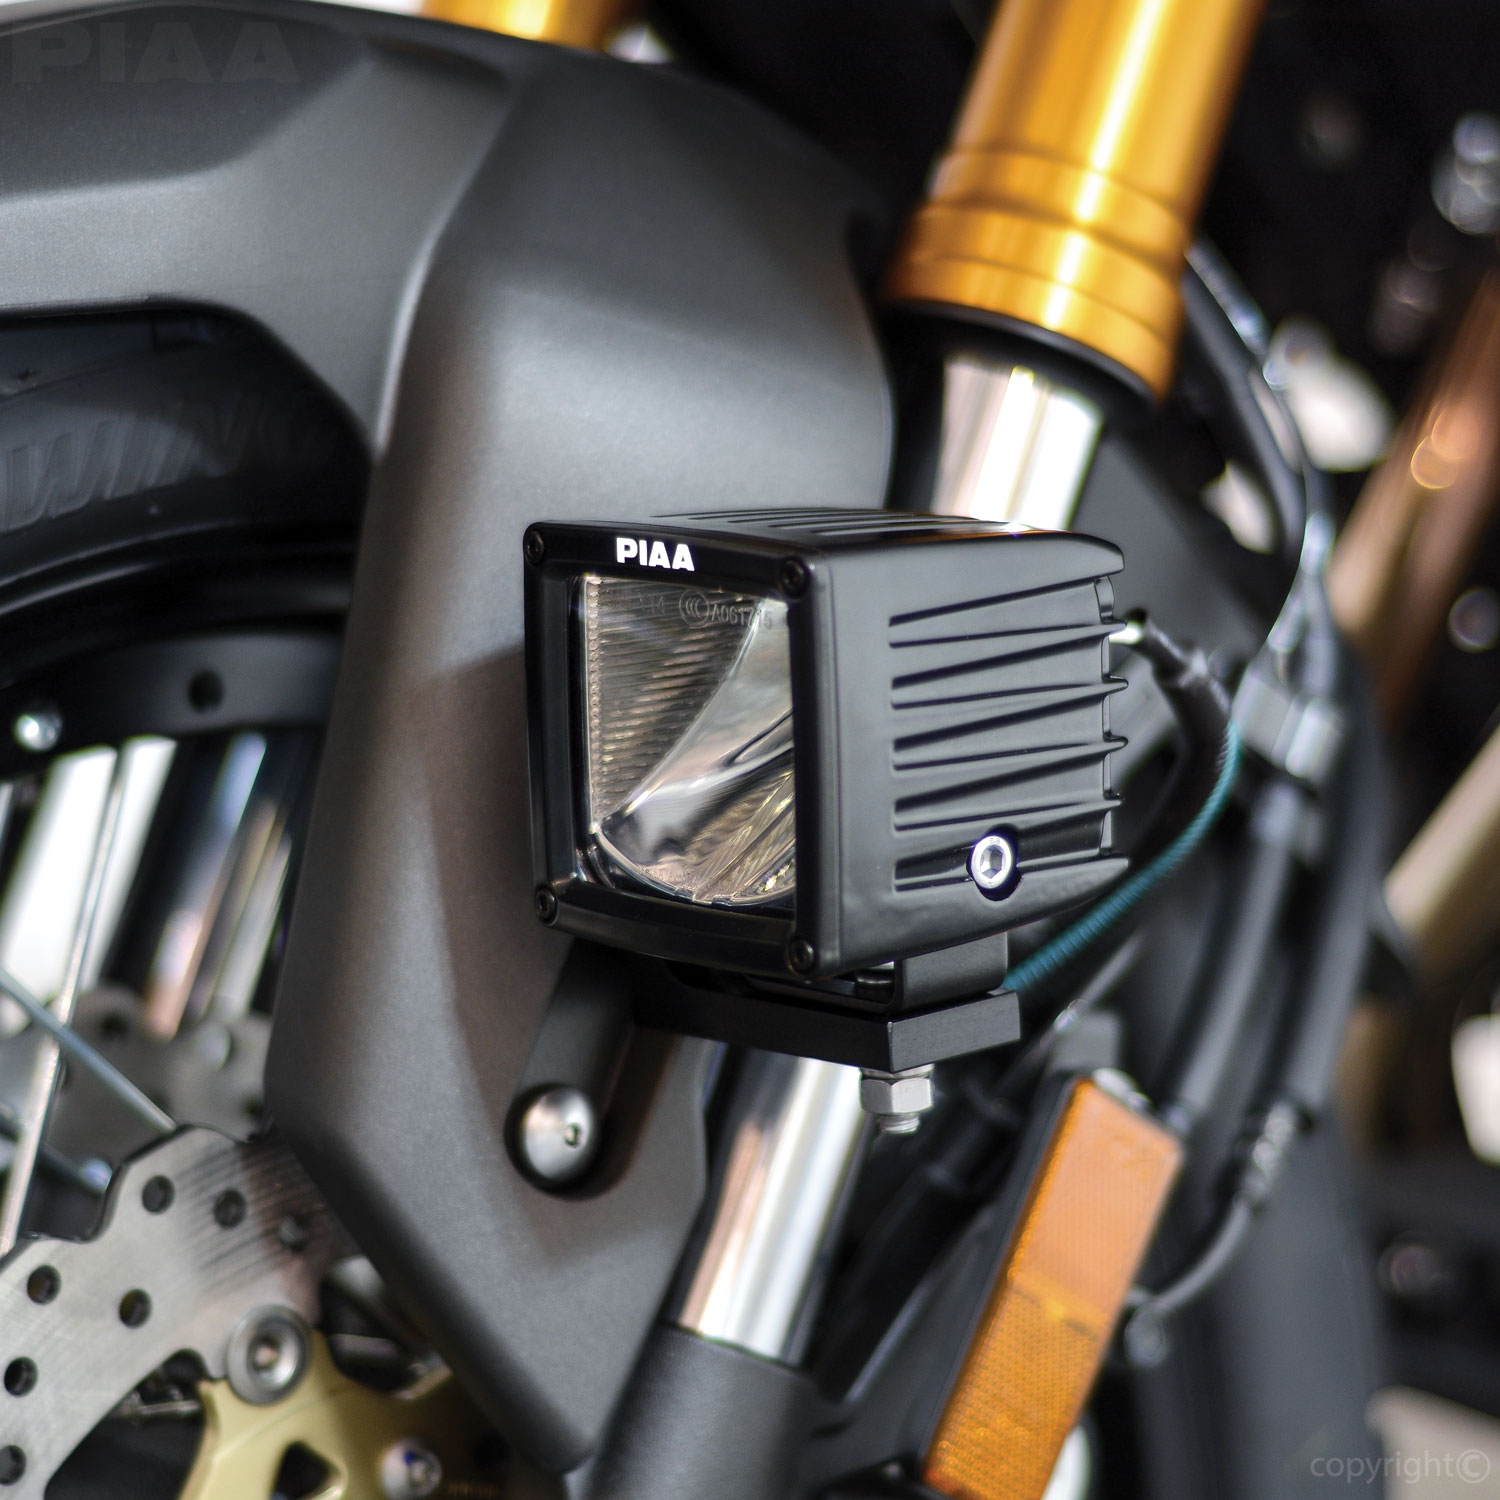 Piaa M6 Lower Fork Mount Kit With Quot L Quot Bracket For Lp530